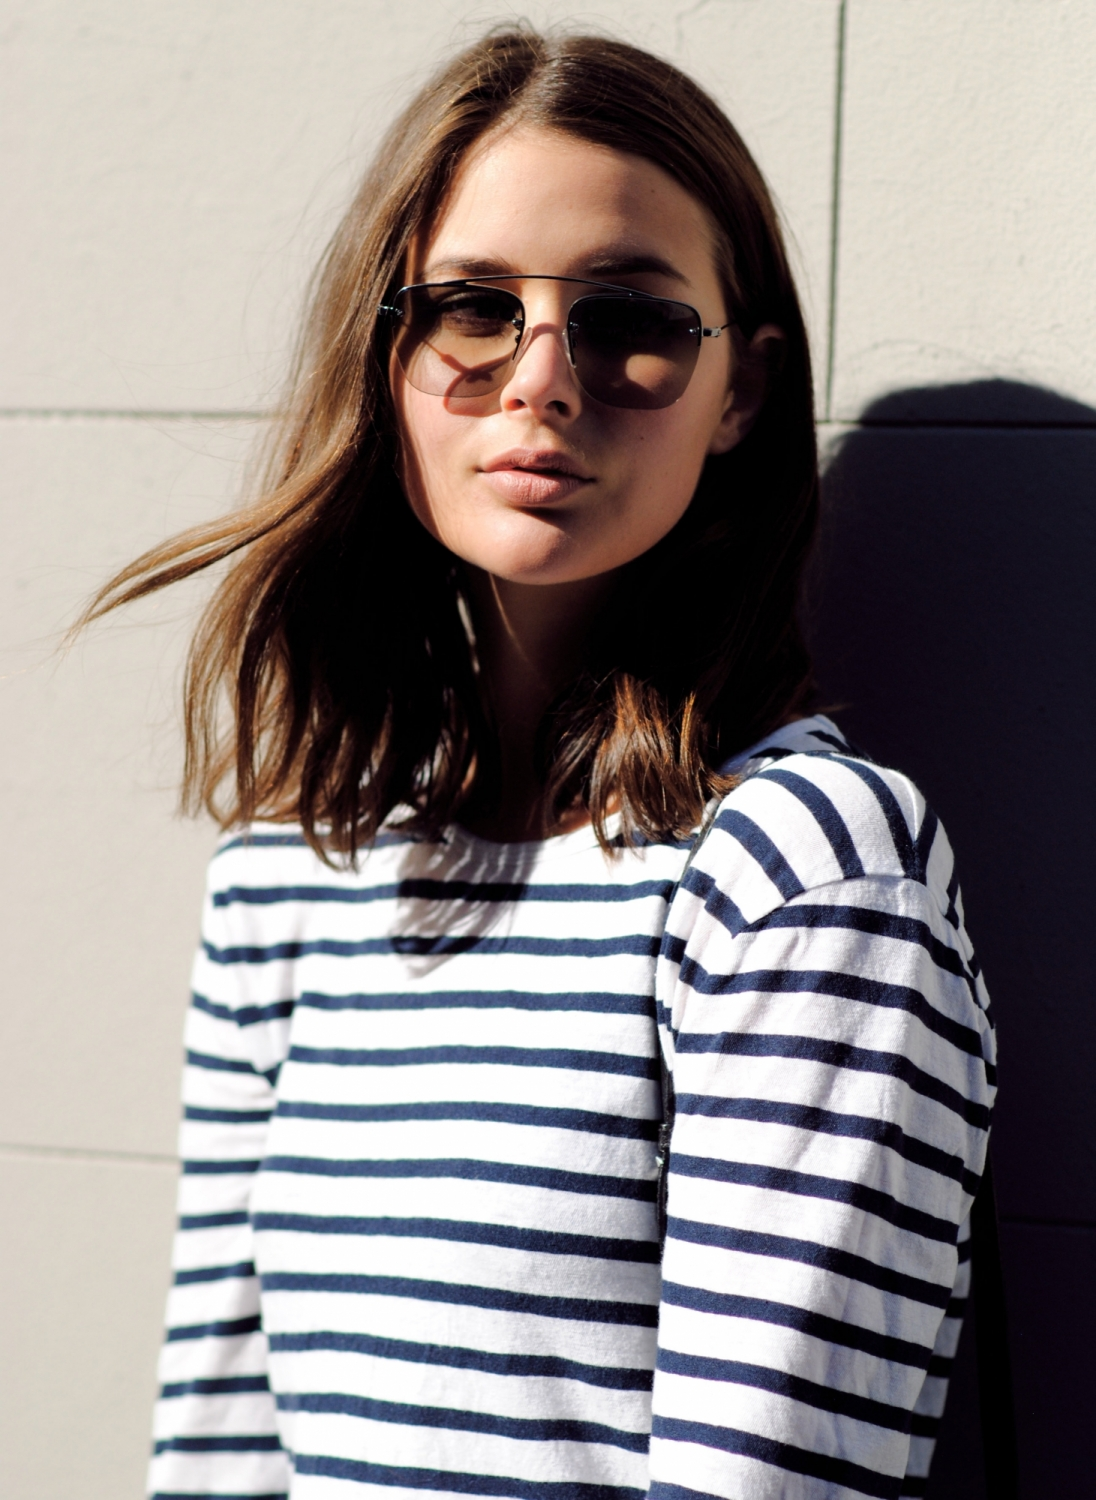 harper and harley_fashion blogger_stripes_white jeans_minimal style_07